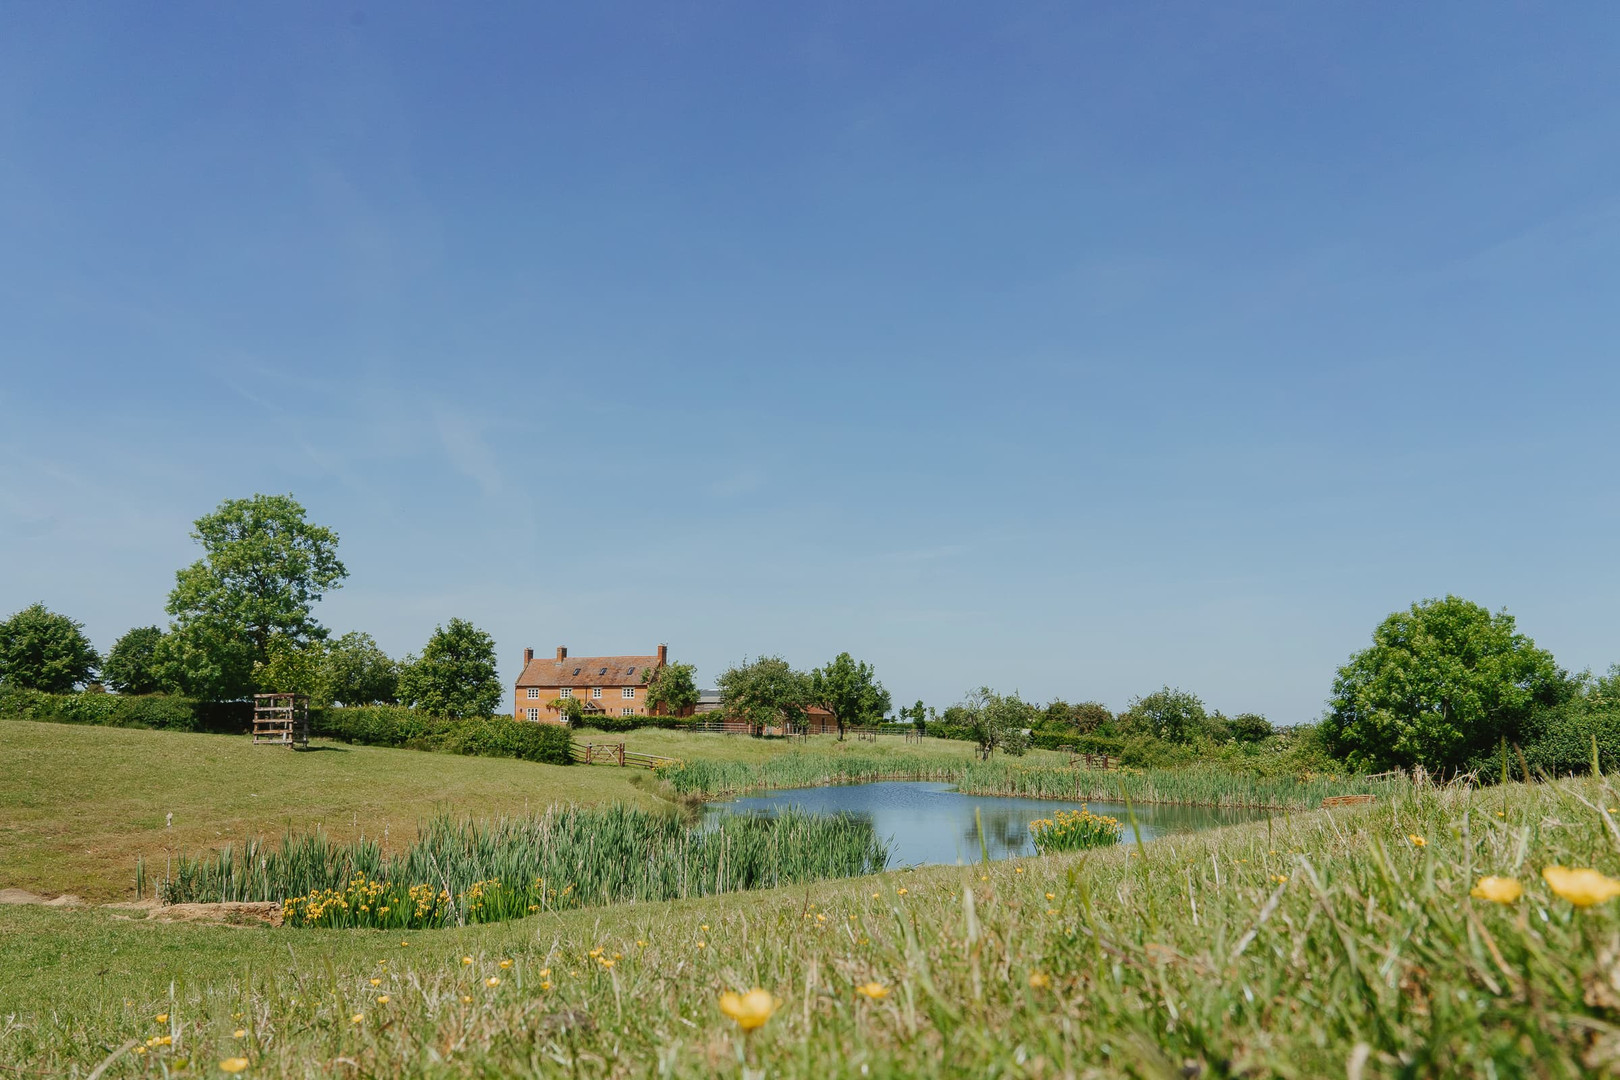 House and pond Primrose Hill Farm Wedding Venue with view of the cotswolds